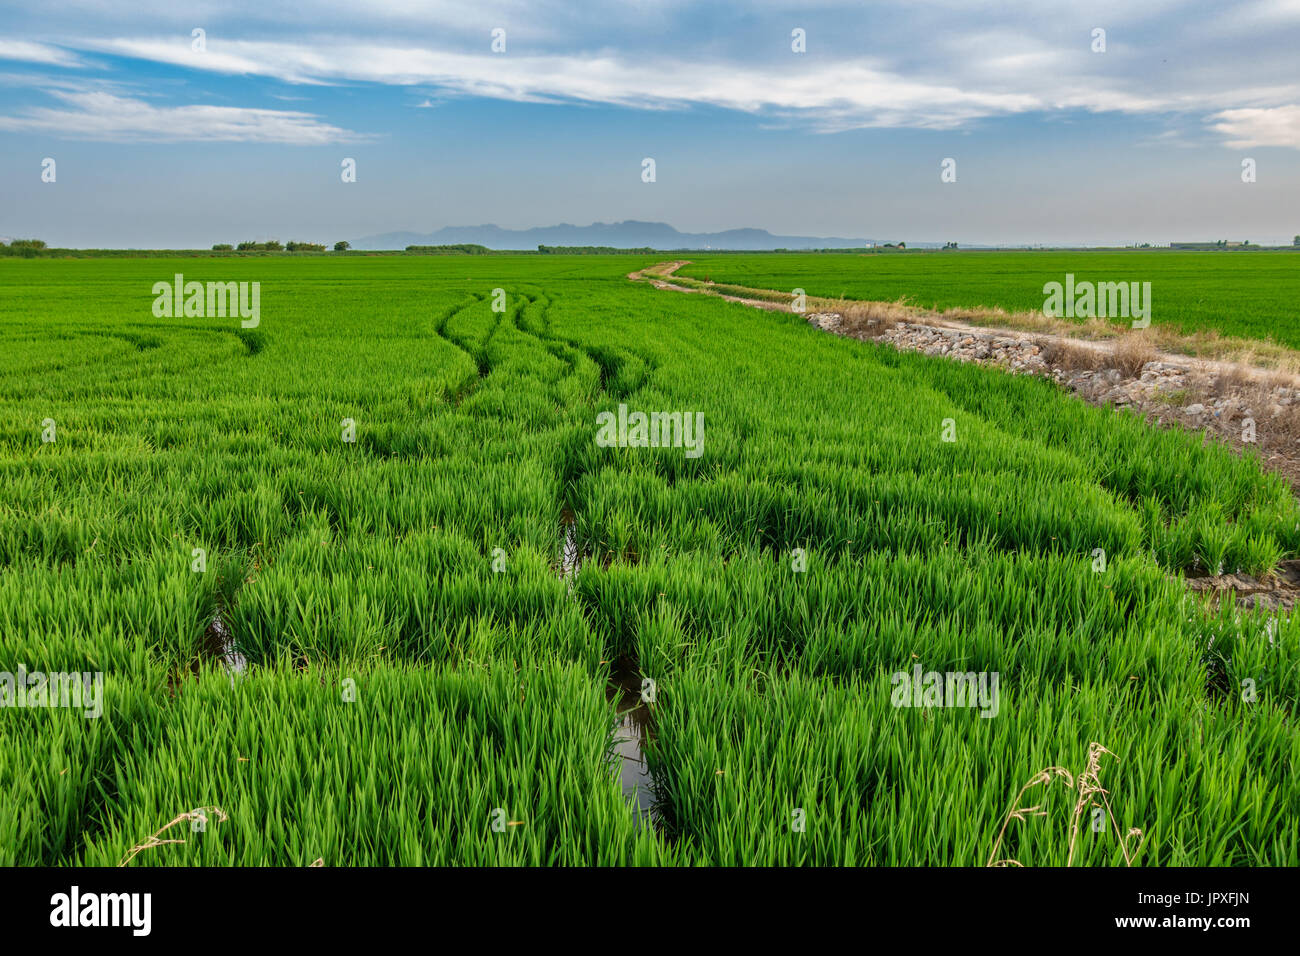 Horchata plantation in Valencia Albufera with truck wheels Stock Photo